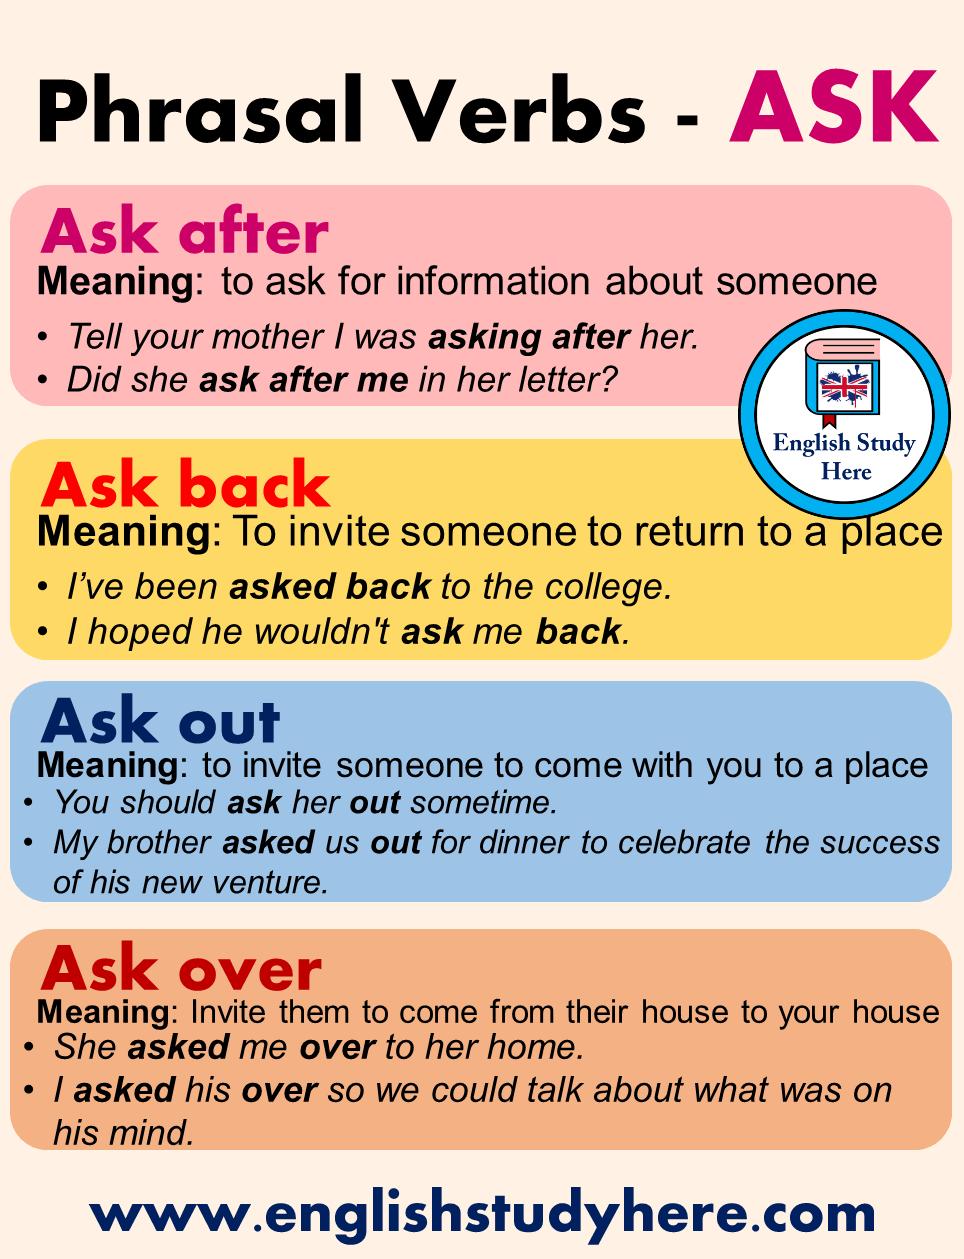 English Phrasal Verbs with ASK, Definitions and Example Sentences